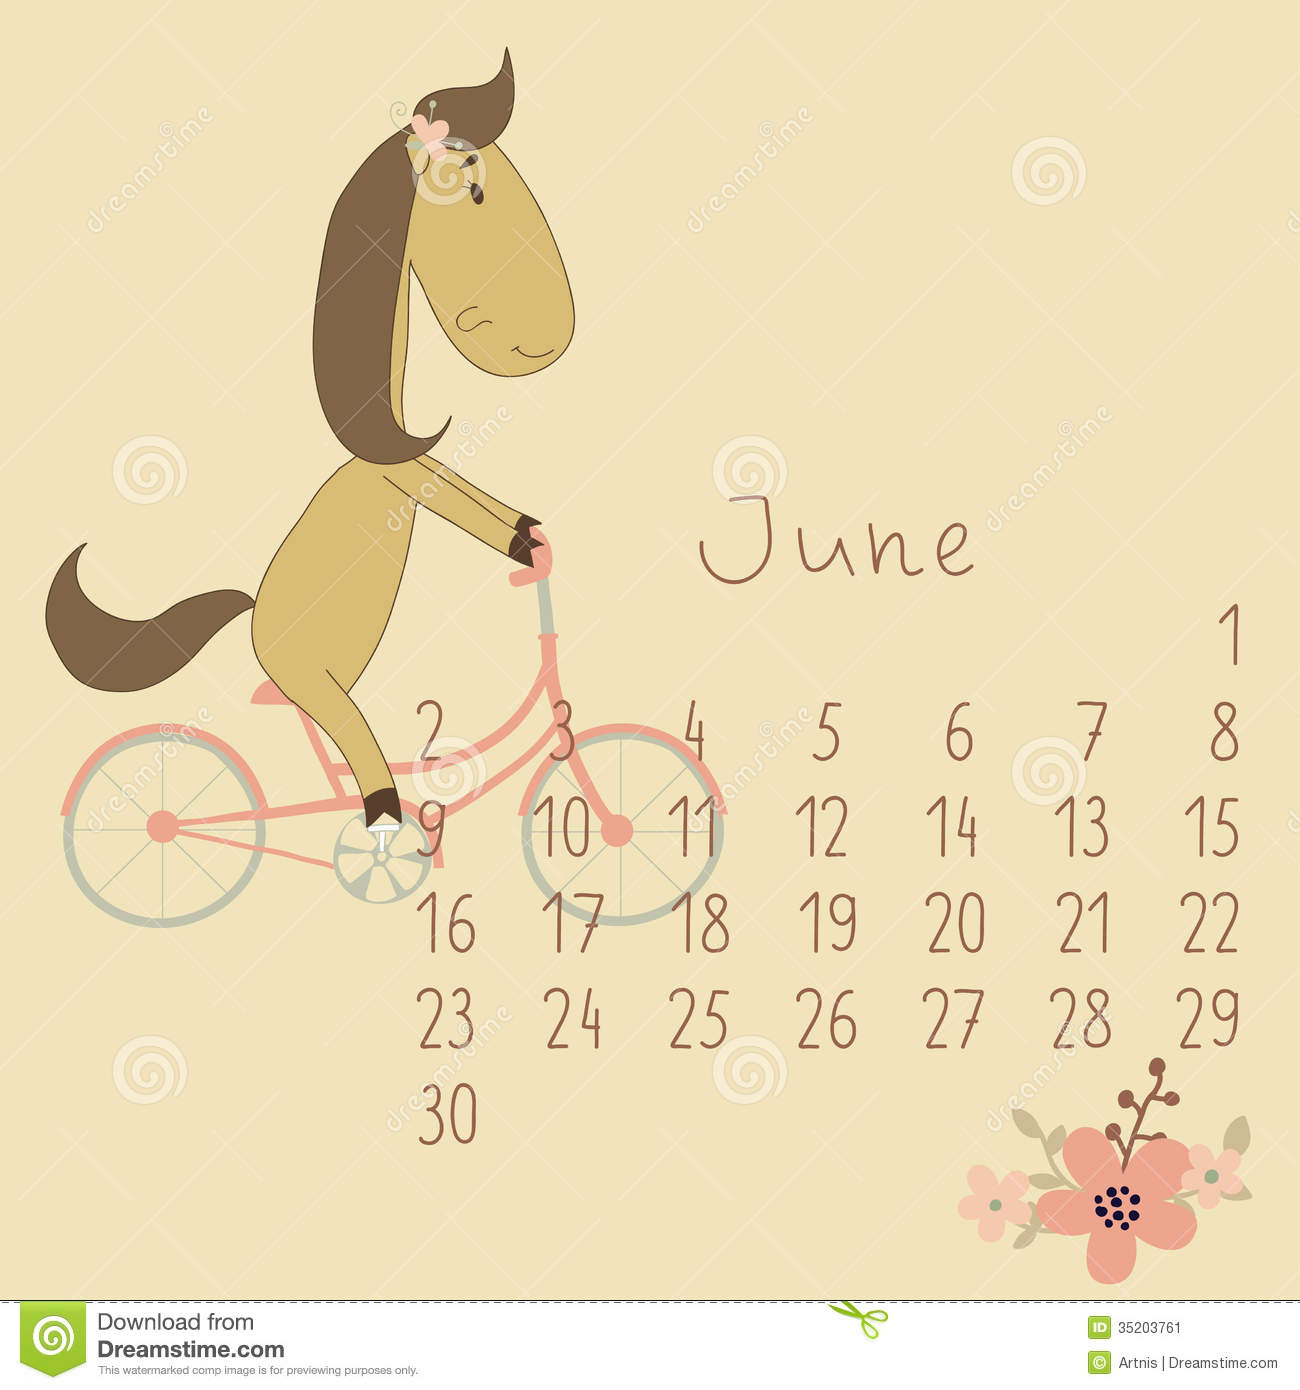 Calendar For June 2014. Year Of The Horse. Stock Image - Image: 35203761